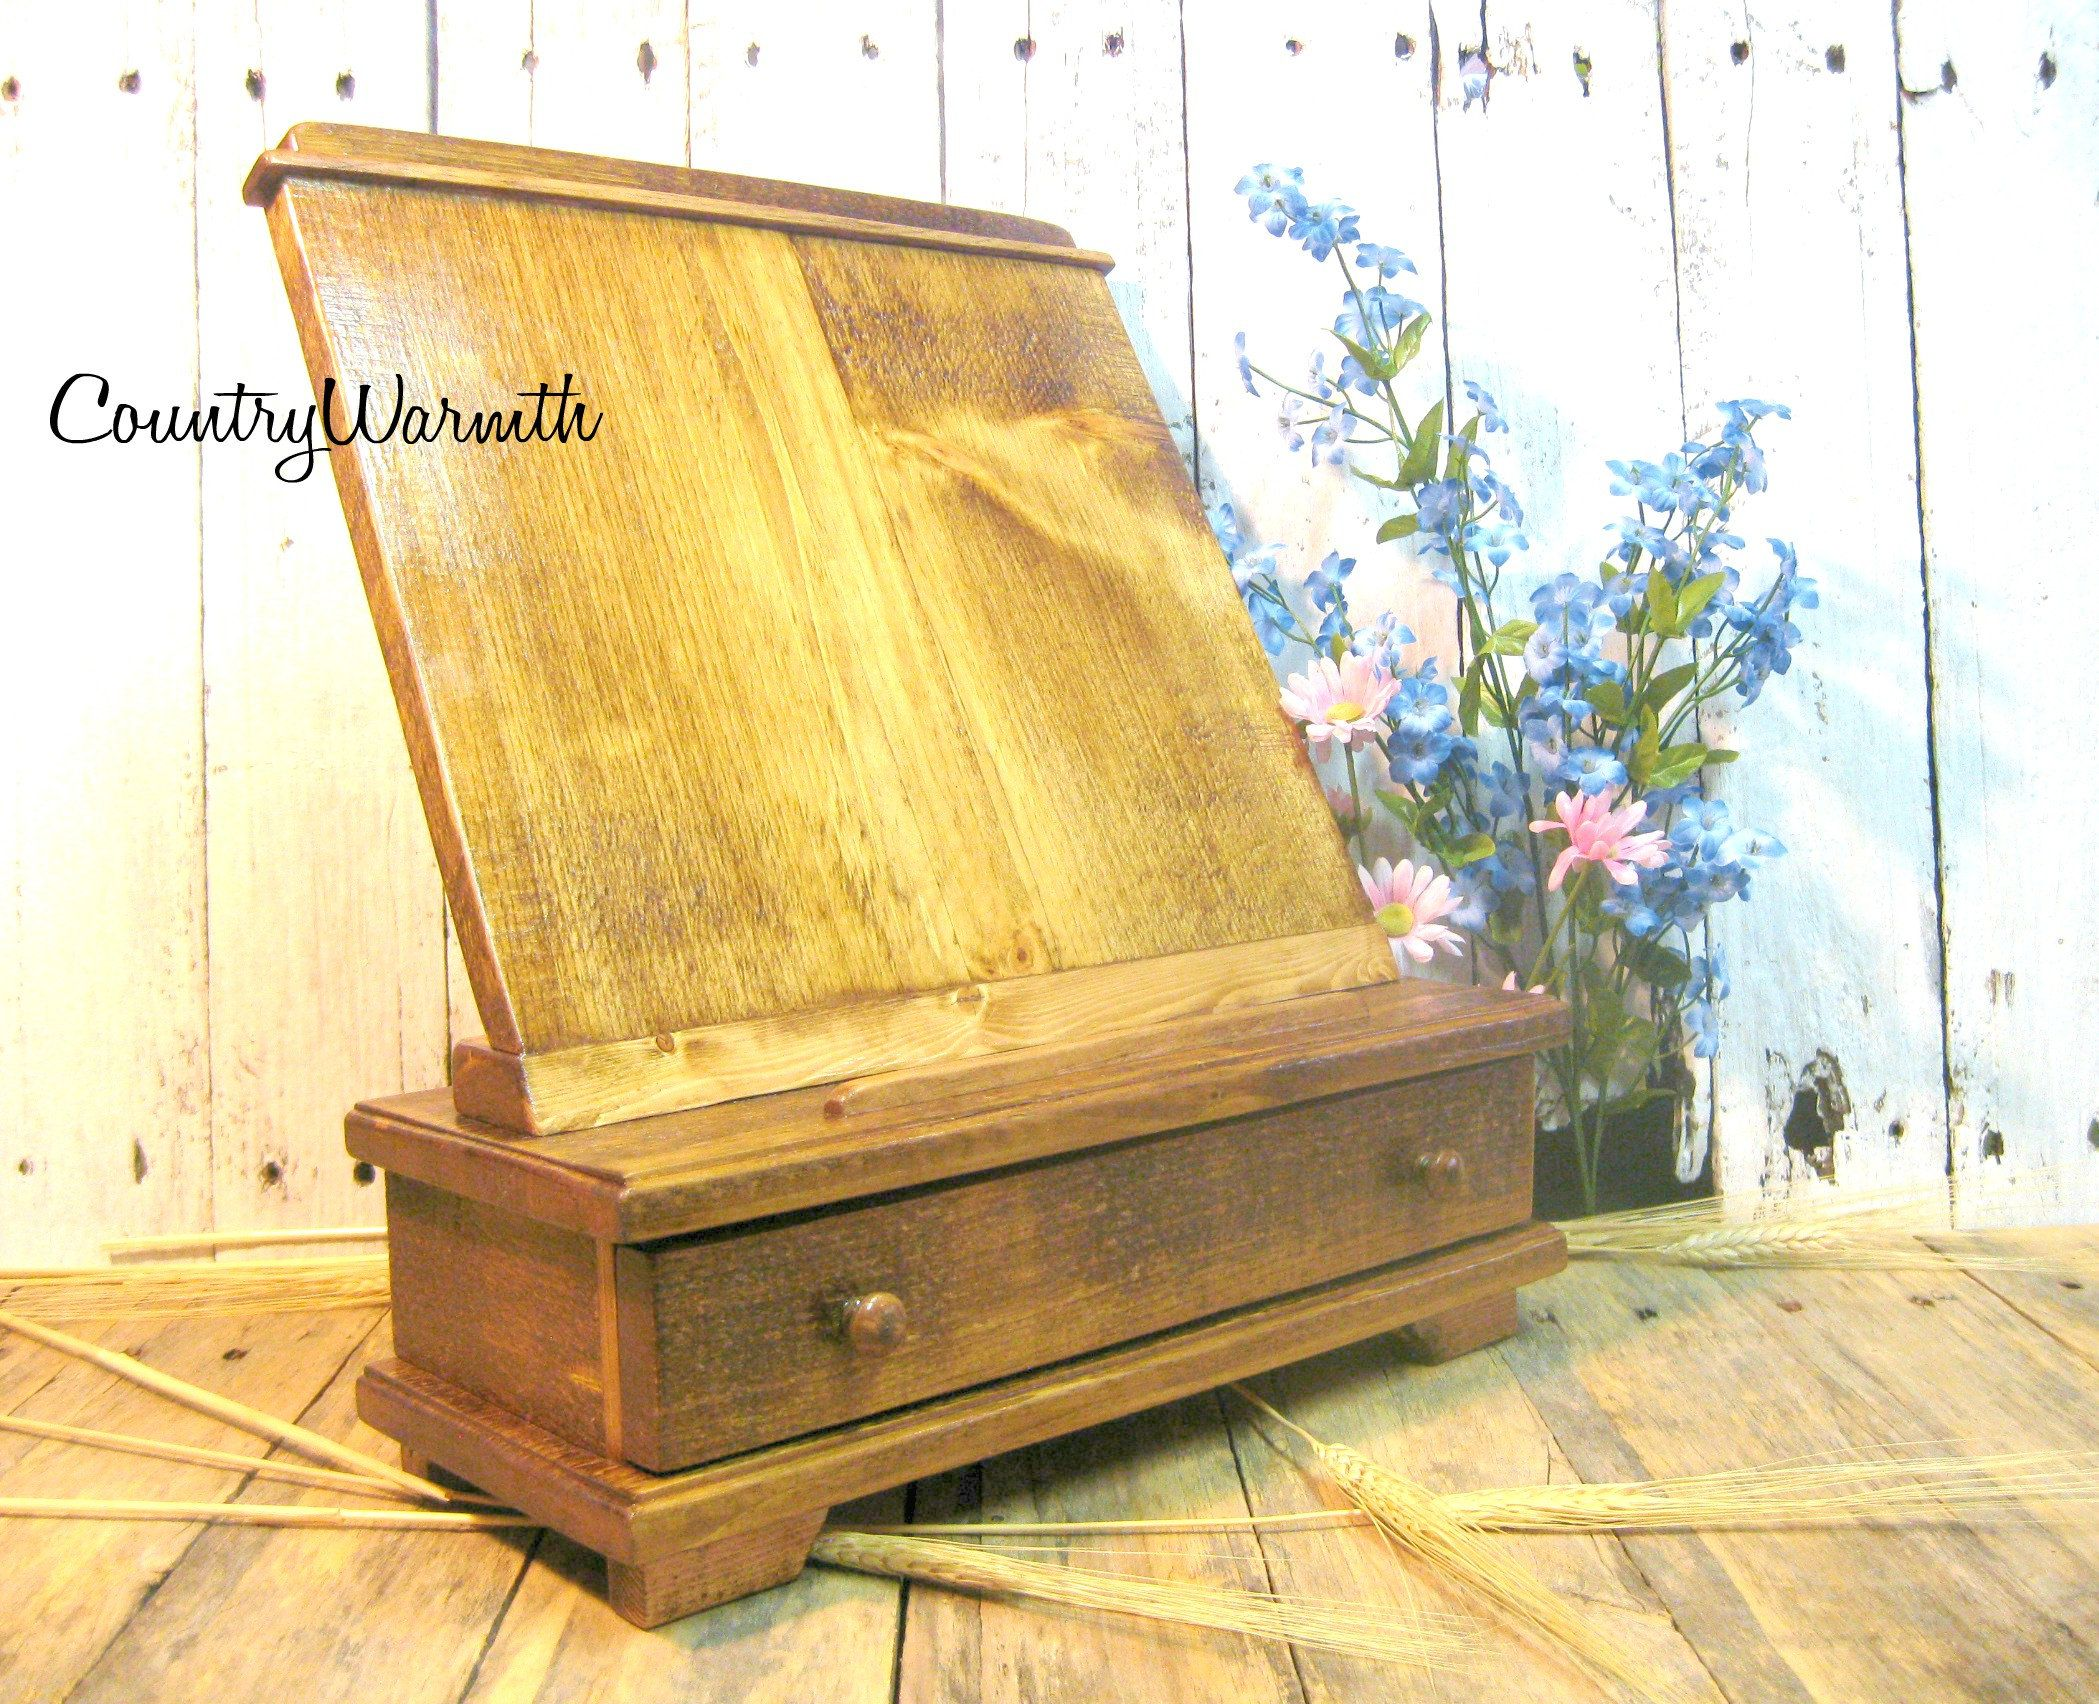 Sensational Mothers Day T Wood Ipad Stand Cookbook Holder Rustic Home Interior And Landscaping Palasignezvosmurscom